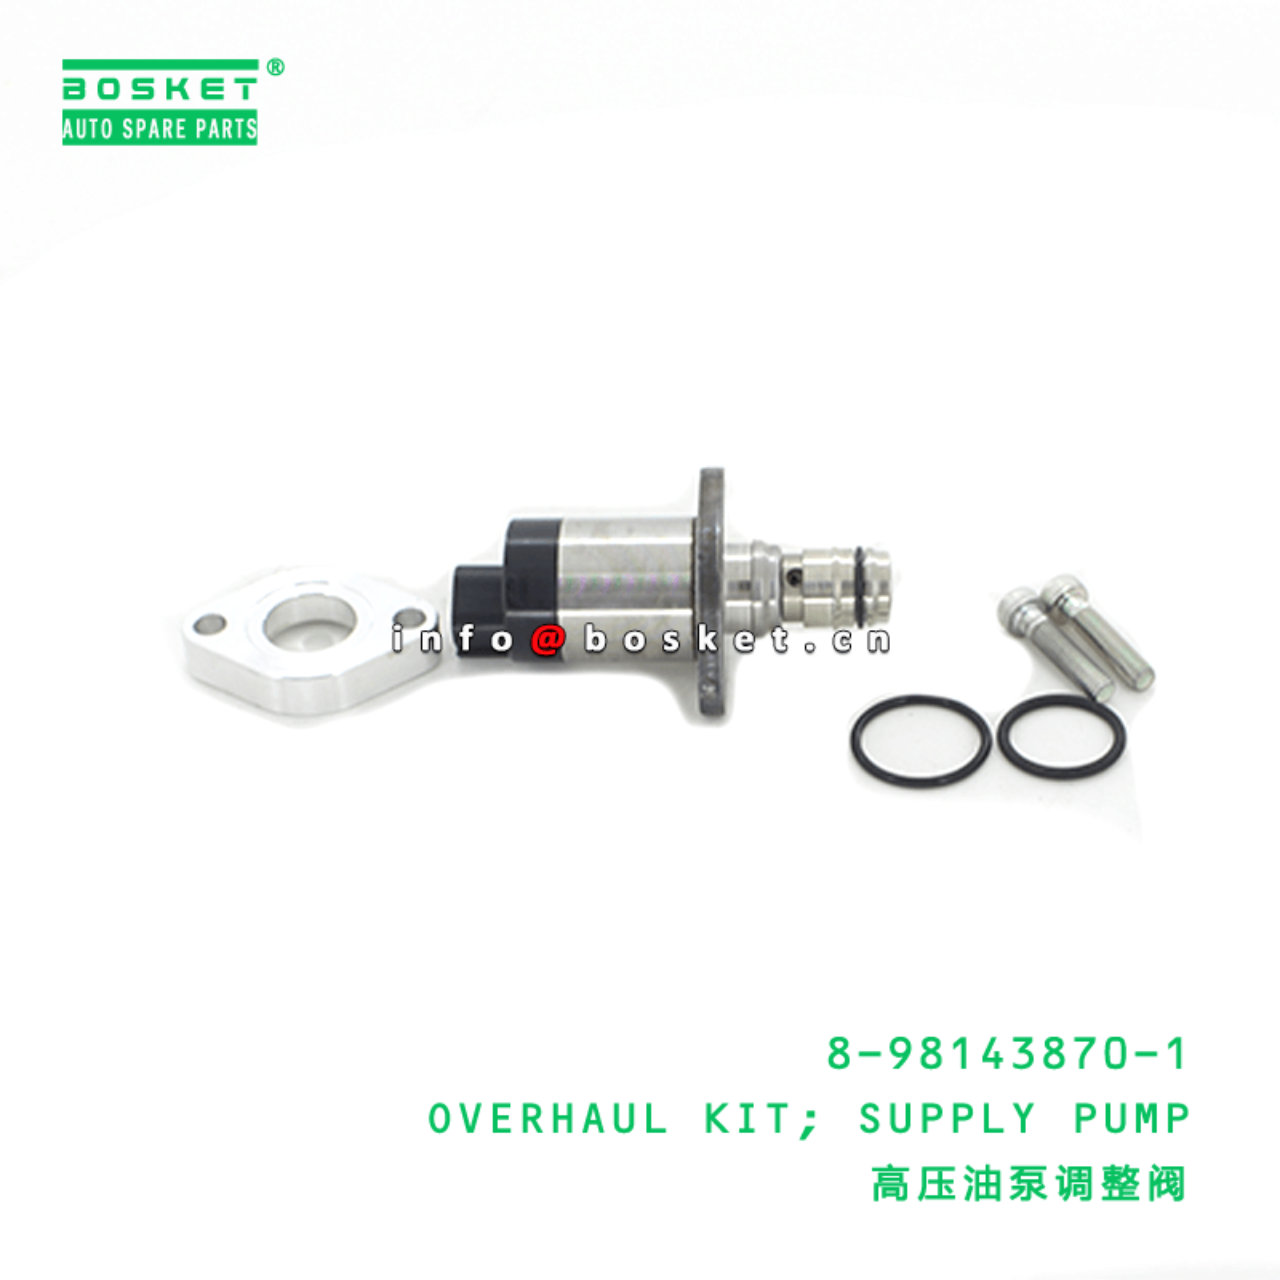 8-98143870-1 Supply Pump Overhaul Kit 8981438701 Suitable for ISUZU ELF 4HK1